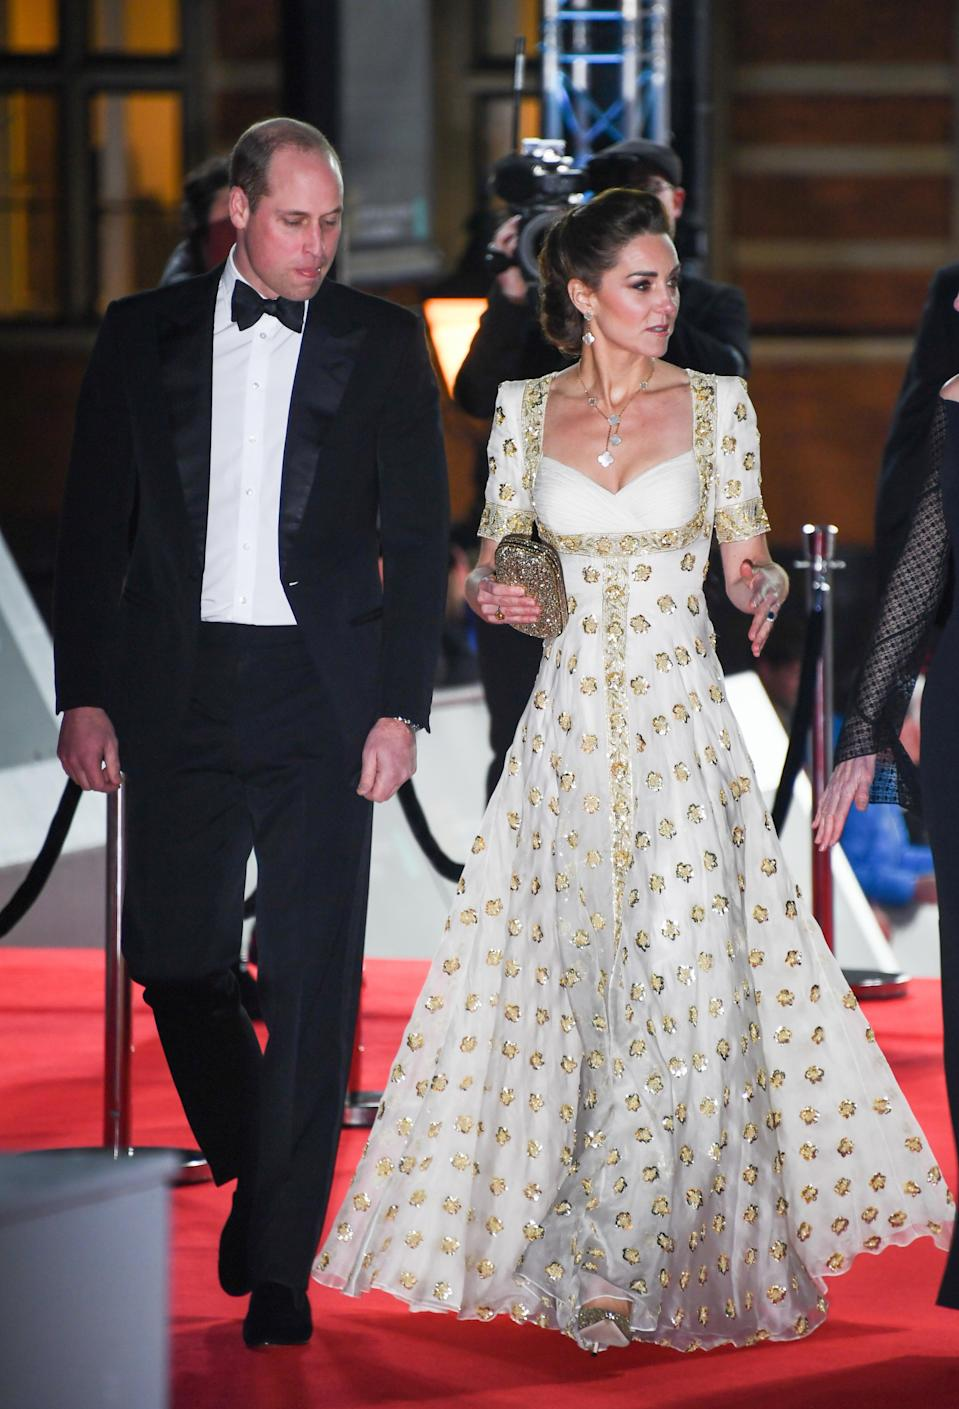 Kate rewore an Alexander McQueen dress to the 2020 BAFTAs that she first wore to a state dinner in Malaysia in 2012 (Gareth Cattermole/Getty Images)